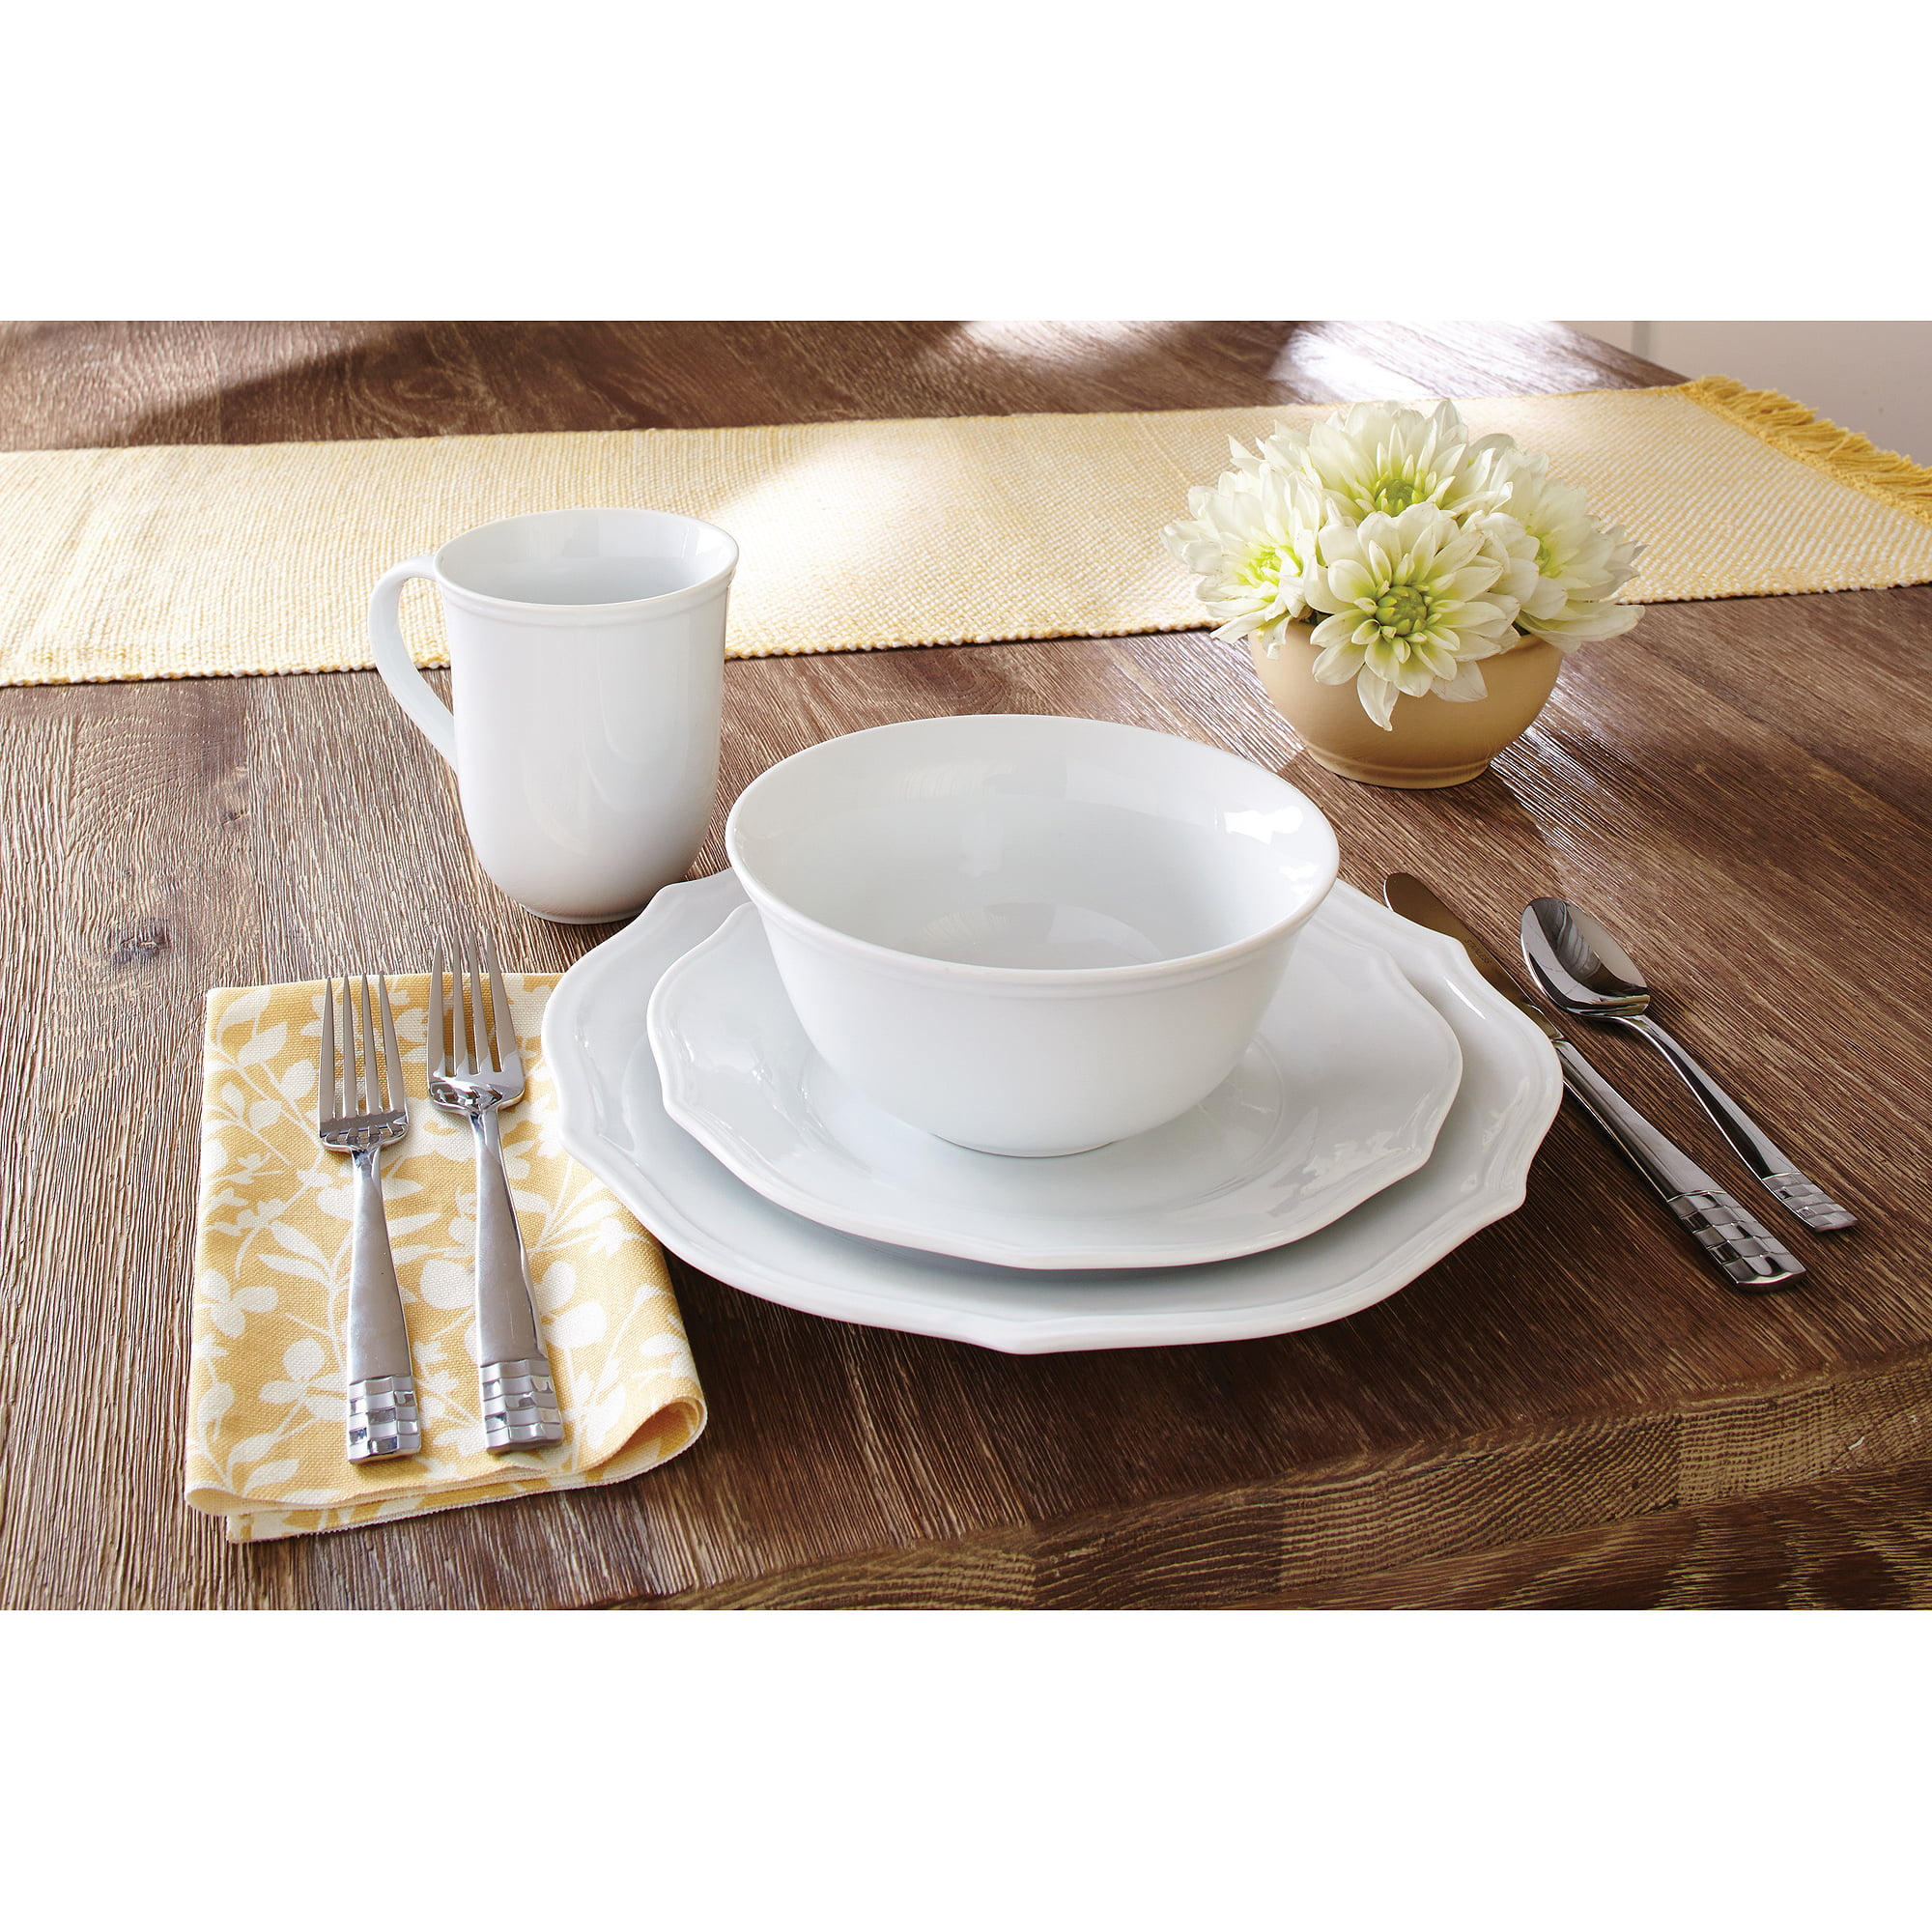 Better Homes and Gardens 16 Piece Scalloped Porcelain Dinnerware